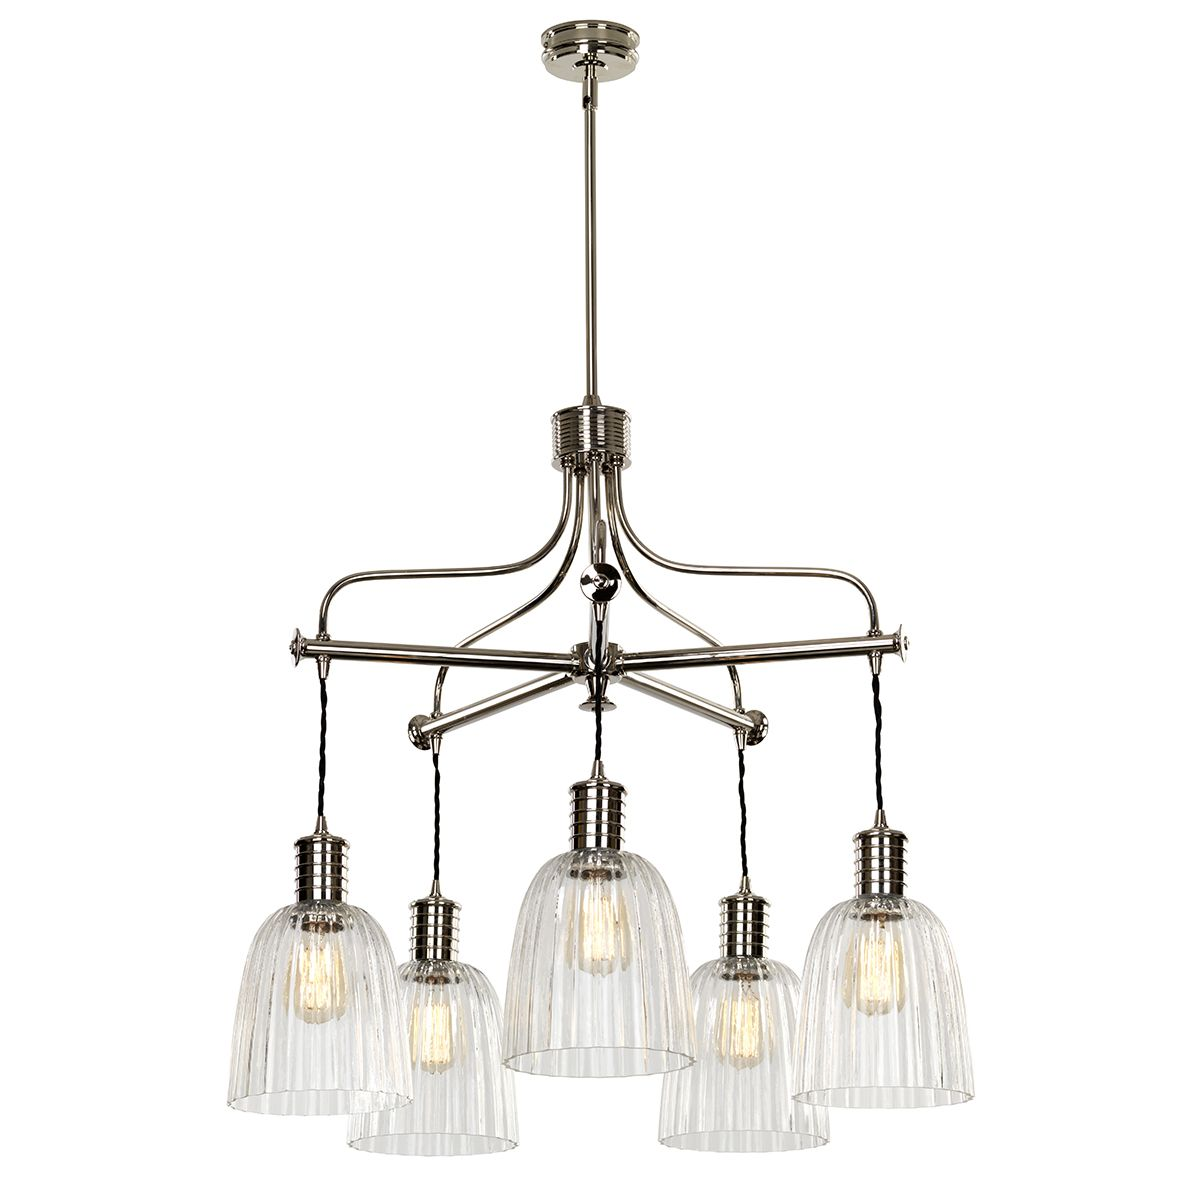 Elstead Douille 5 arm chandelier DOUILLE5 PN